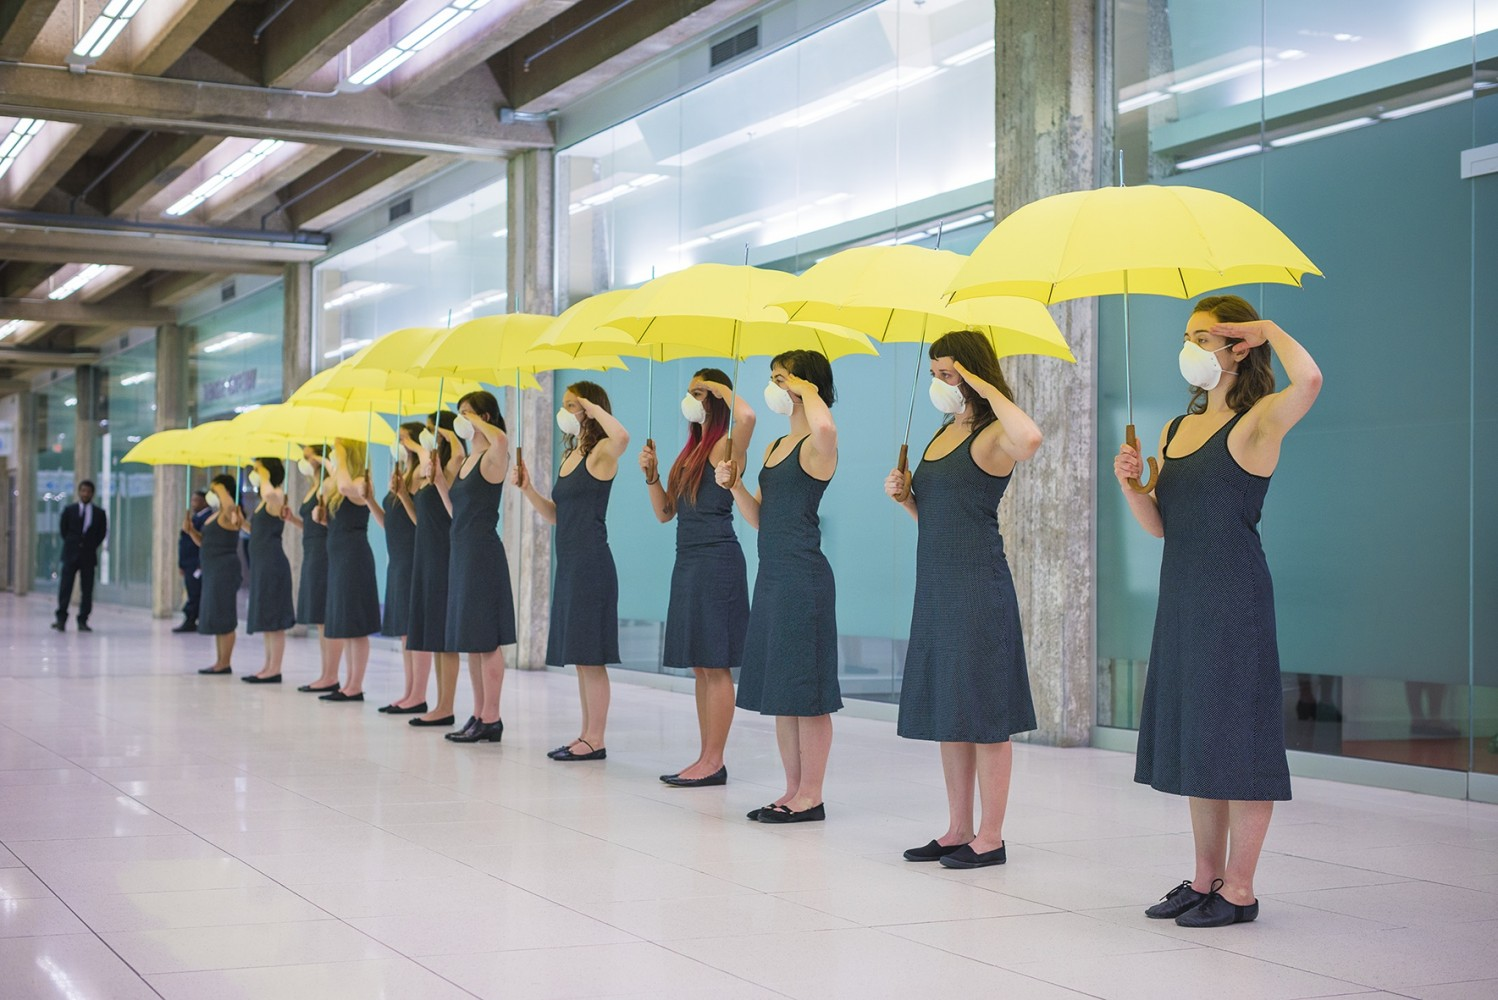 PERFORMANCE // The Yellow Umbrella – An Unfinished Conversation